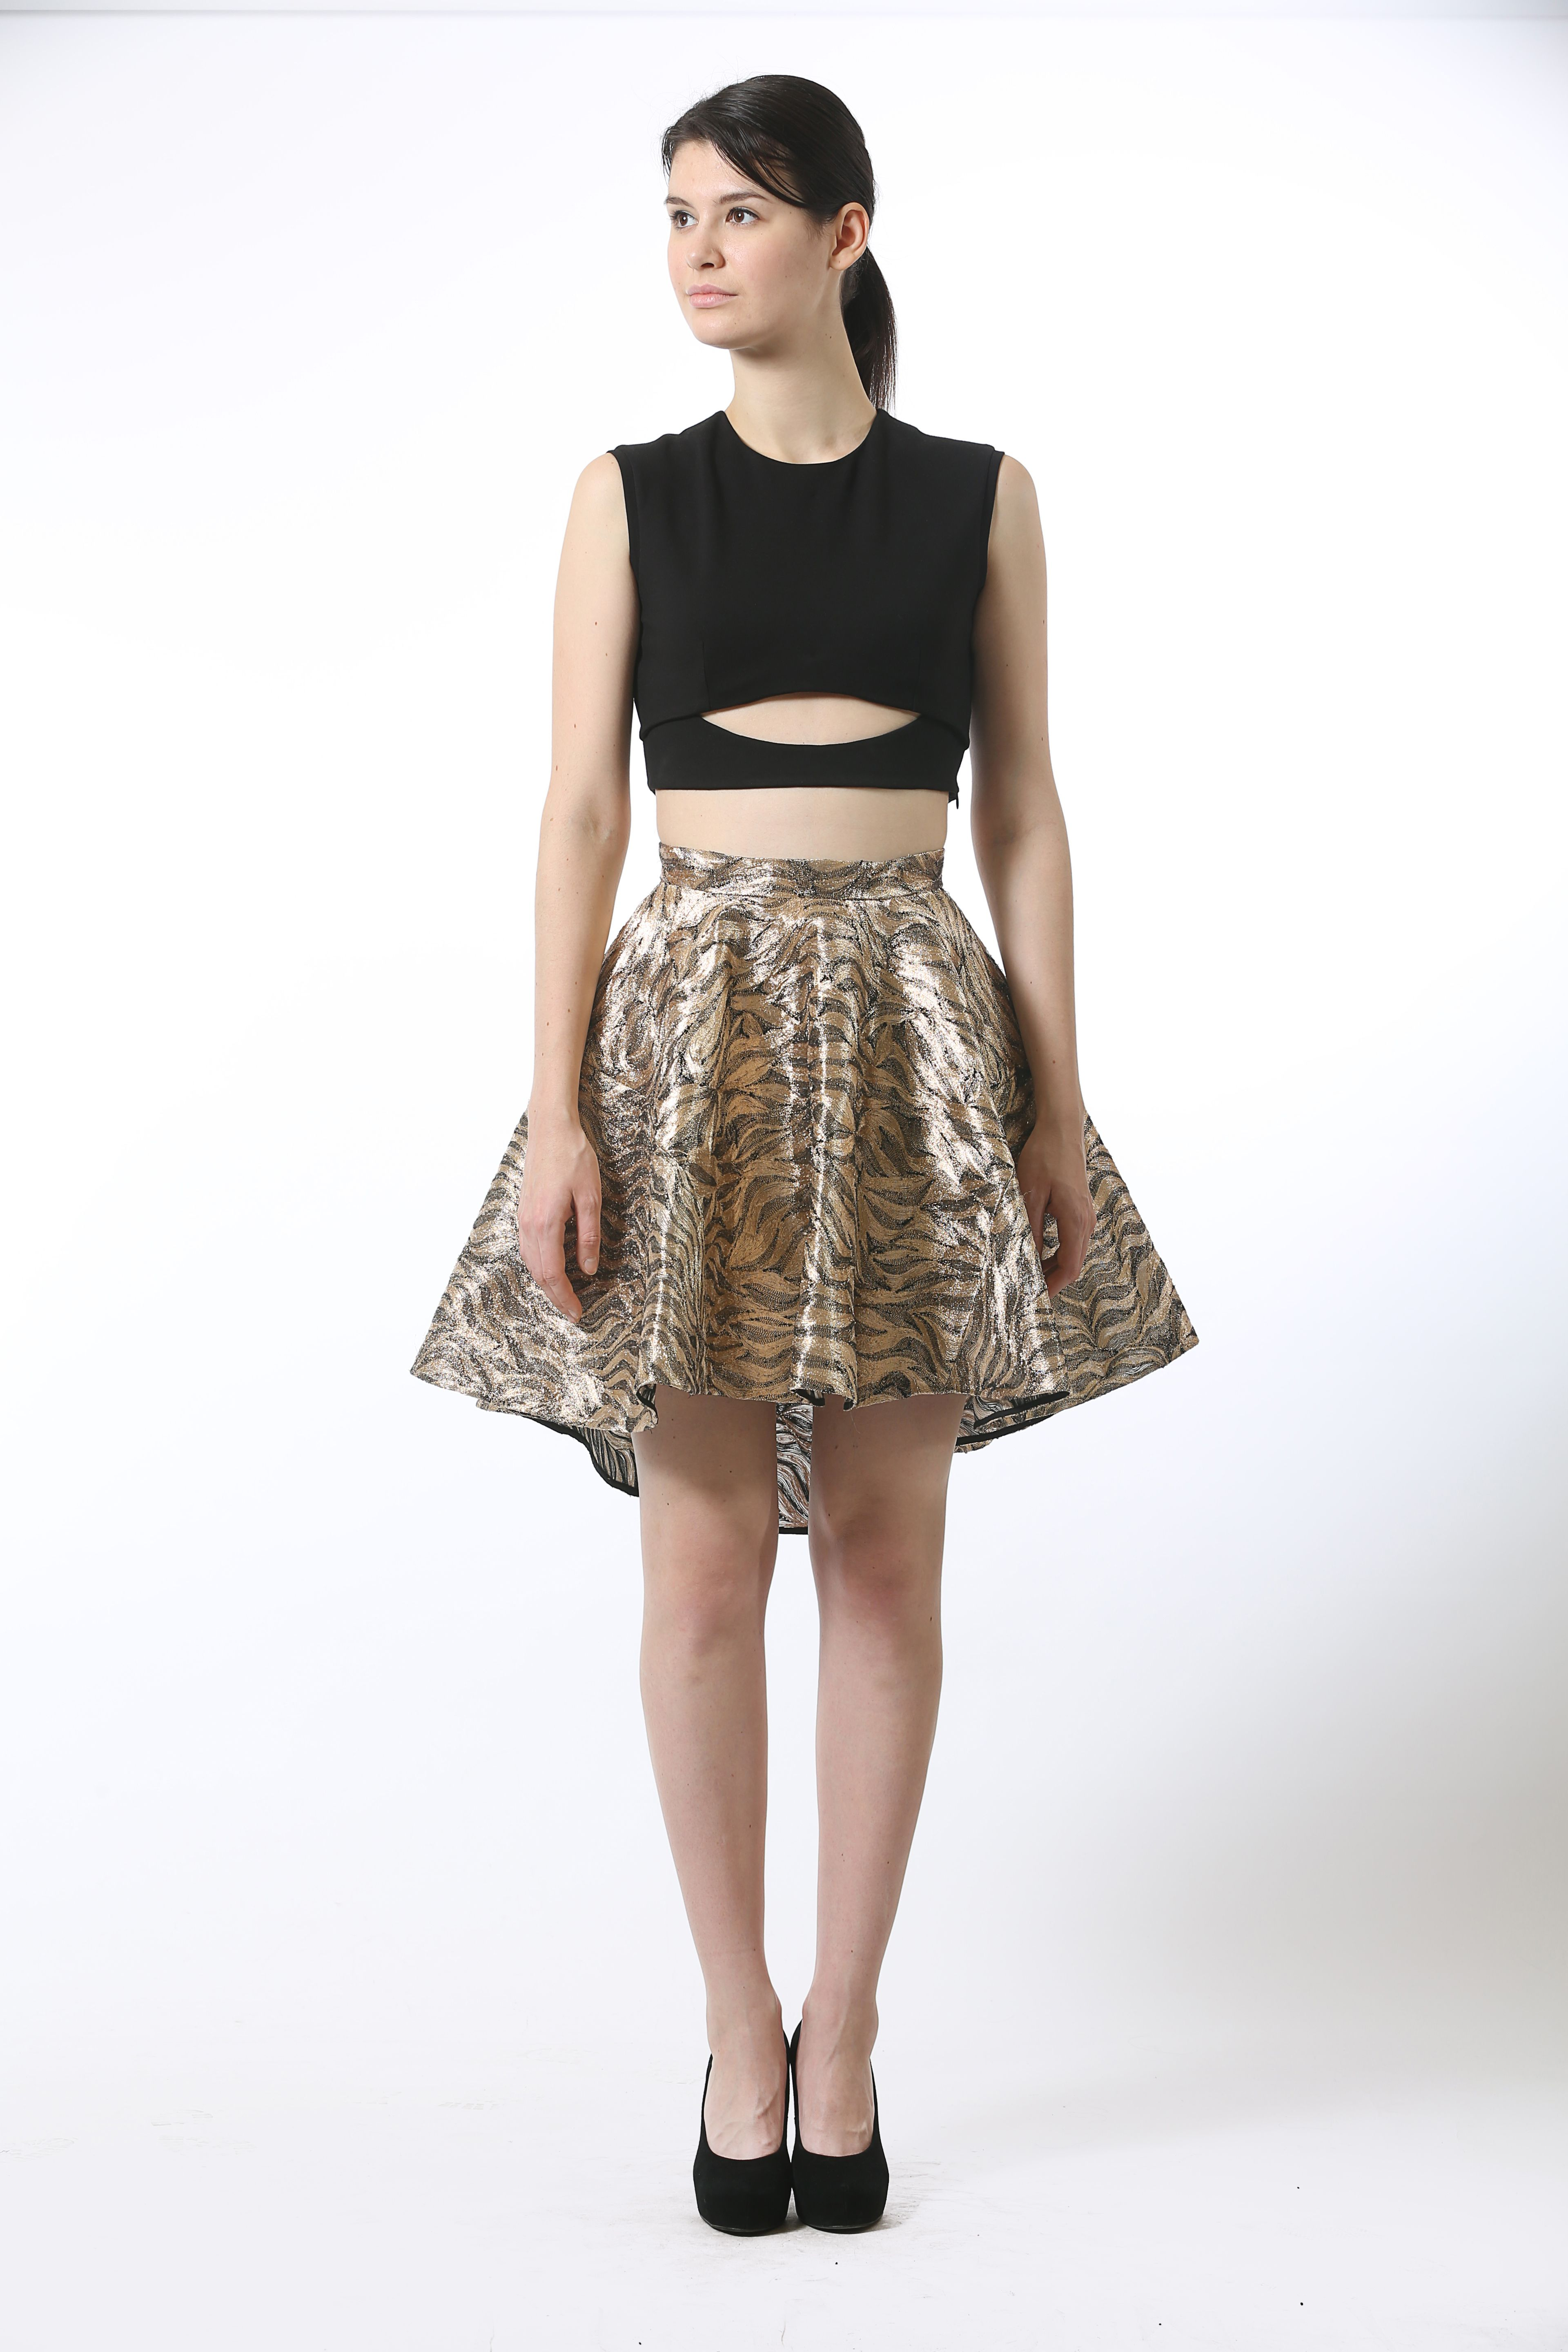 2eb8be6fc15 TOP  Lycra jersey crop top featuring a cut-out detail and an off center  conceal zip bone detail. BOTTOM  Gold metallic embroidered silk organza  skater skirt ...